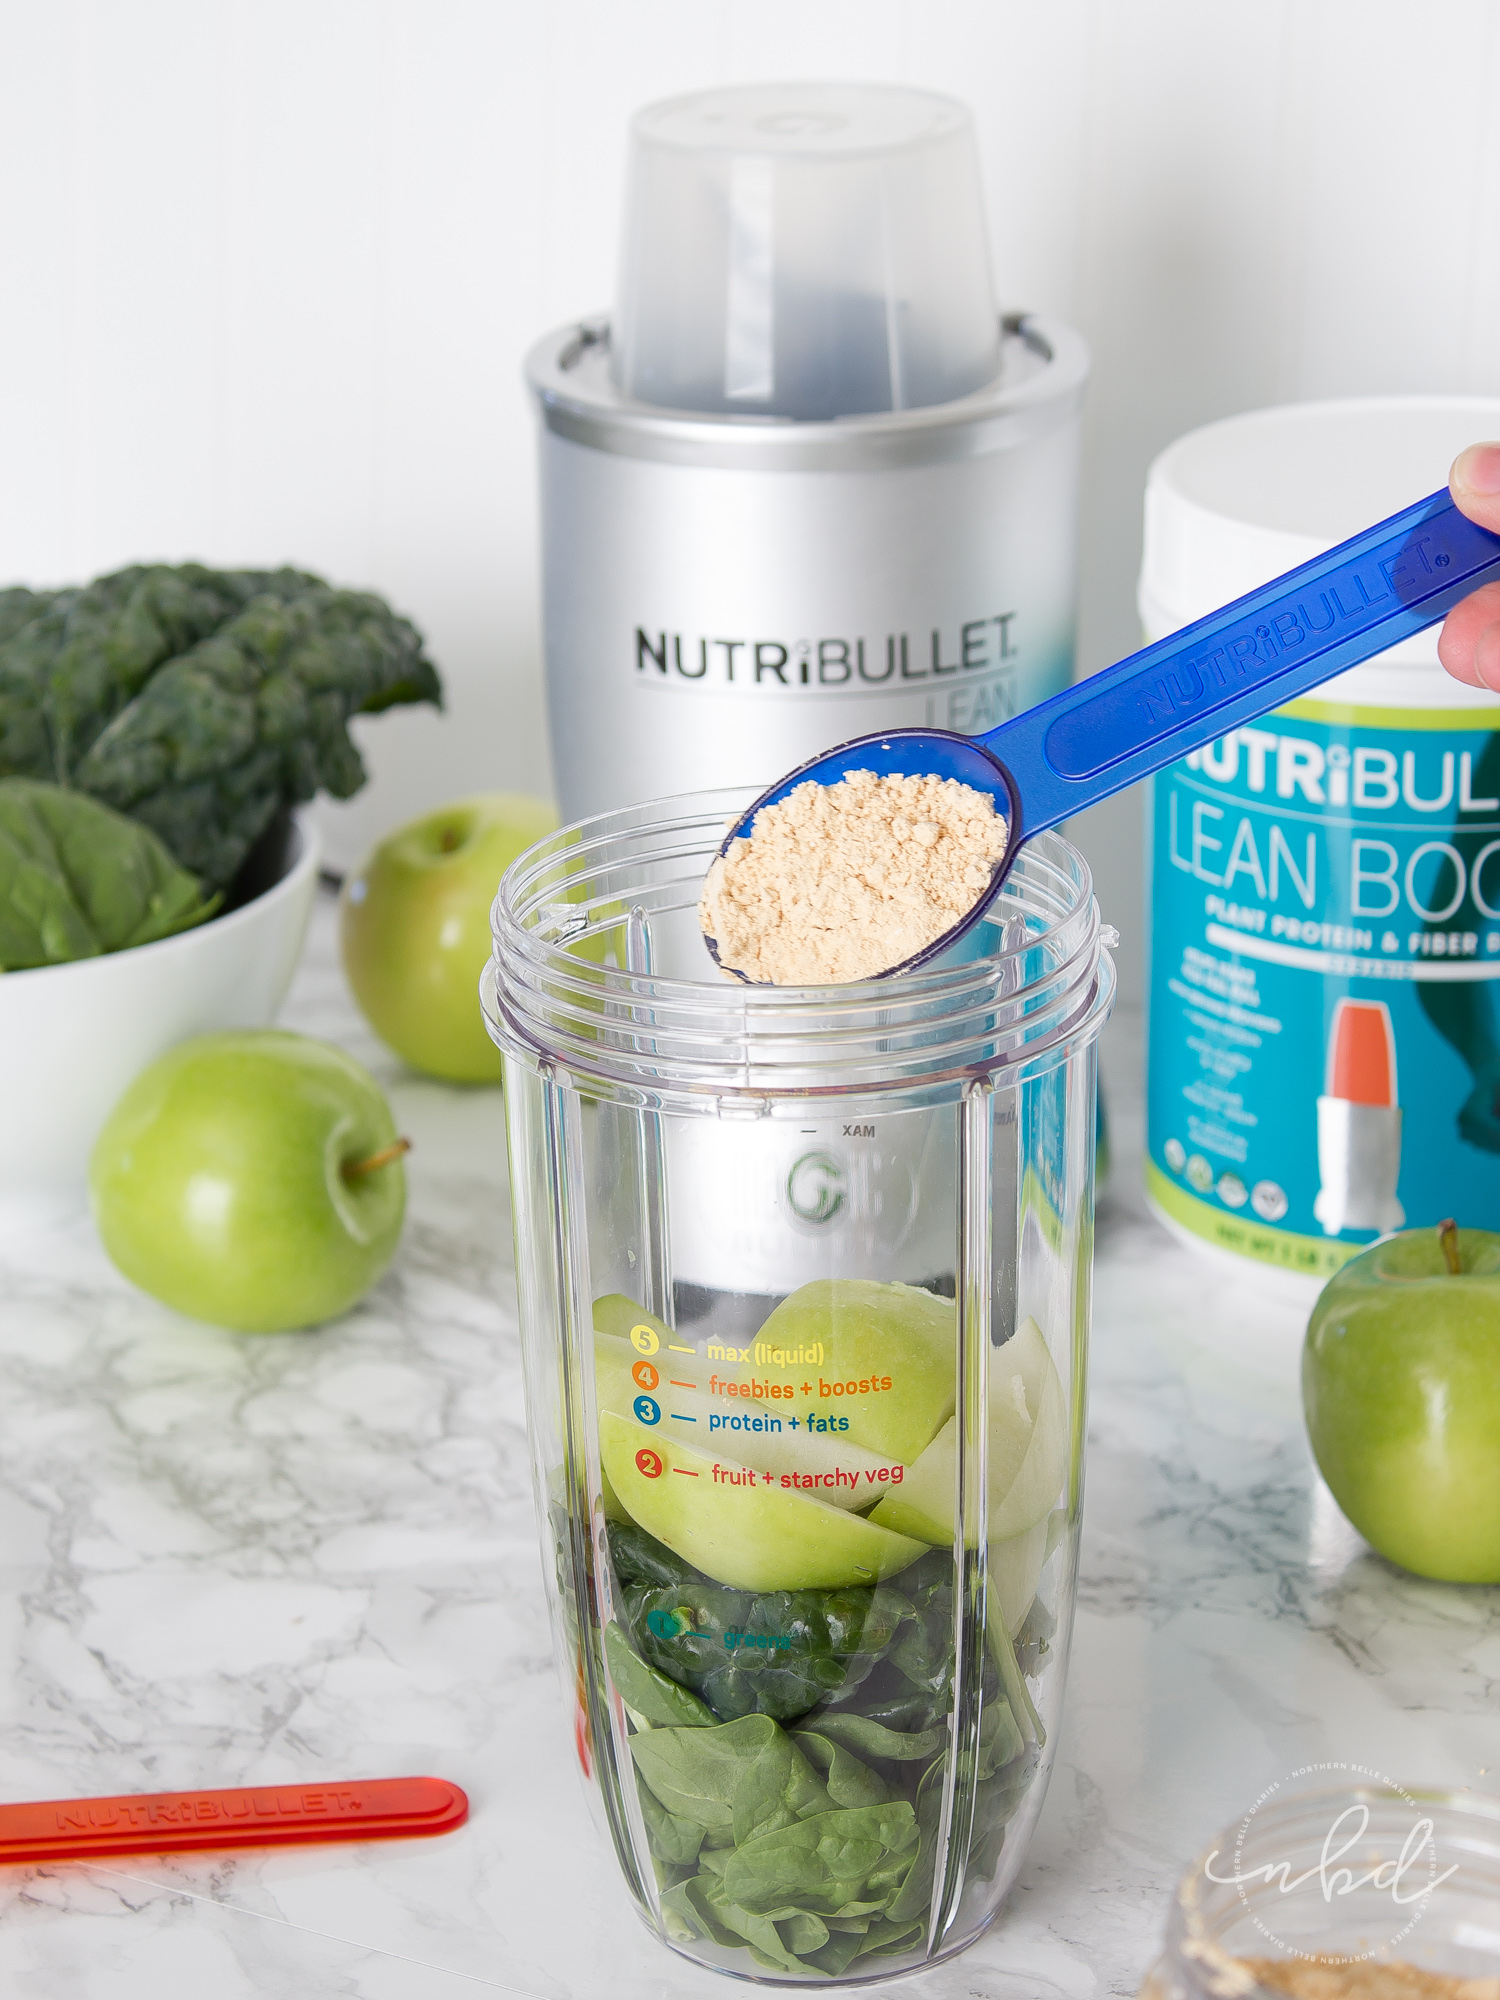 NutriBullet LEAN system 7-Day transformation adding protein